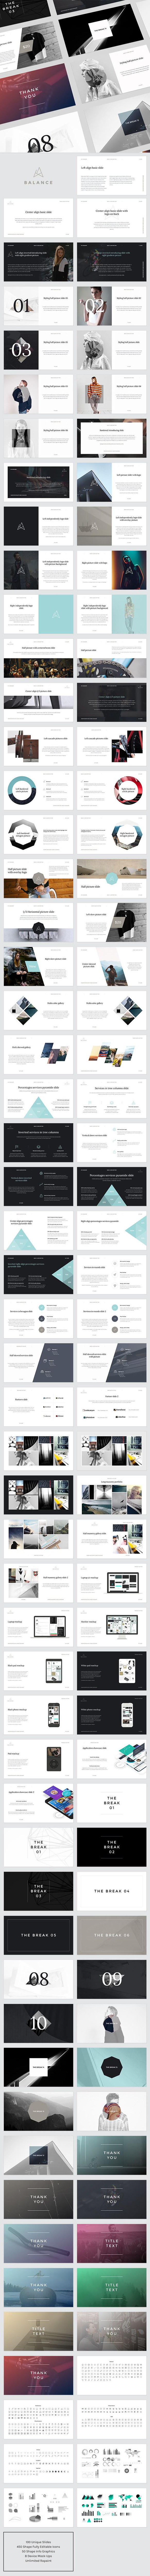 BALANCE Keynote Presentation Template #design #slides Download: http://graphicriver.net/item/balance-keynote-presentation/14292727?ref=ksioks